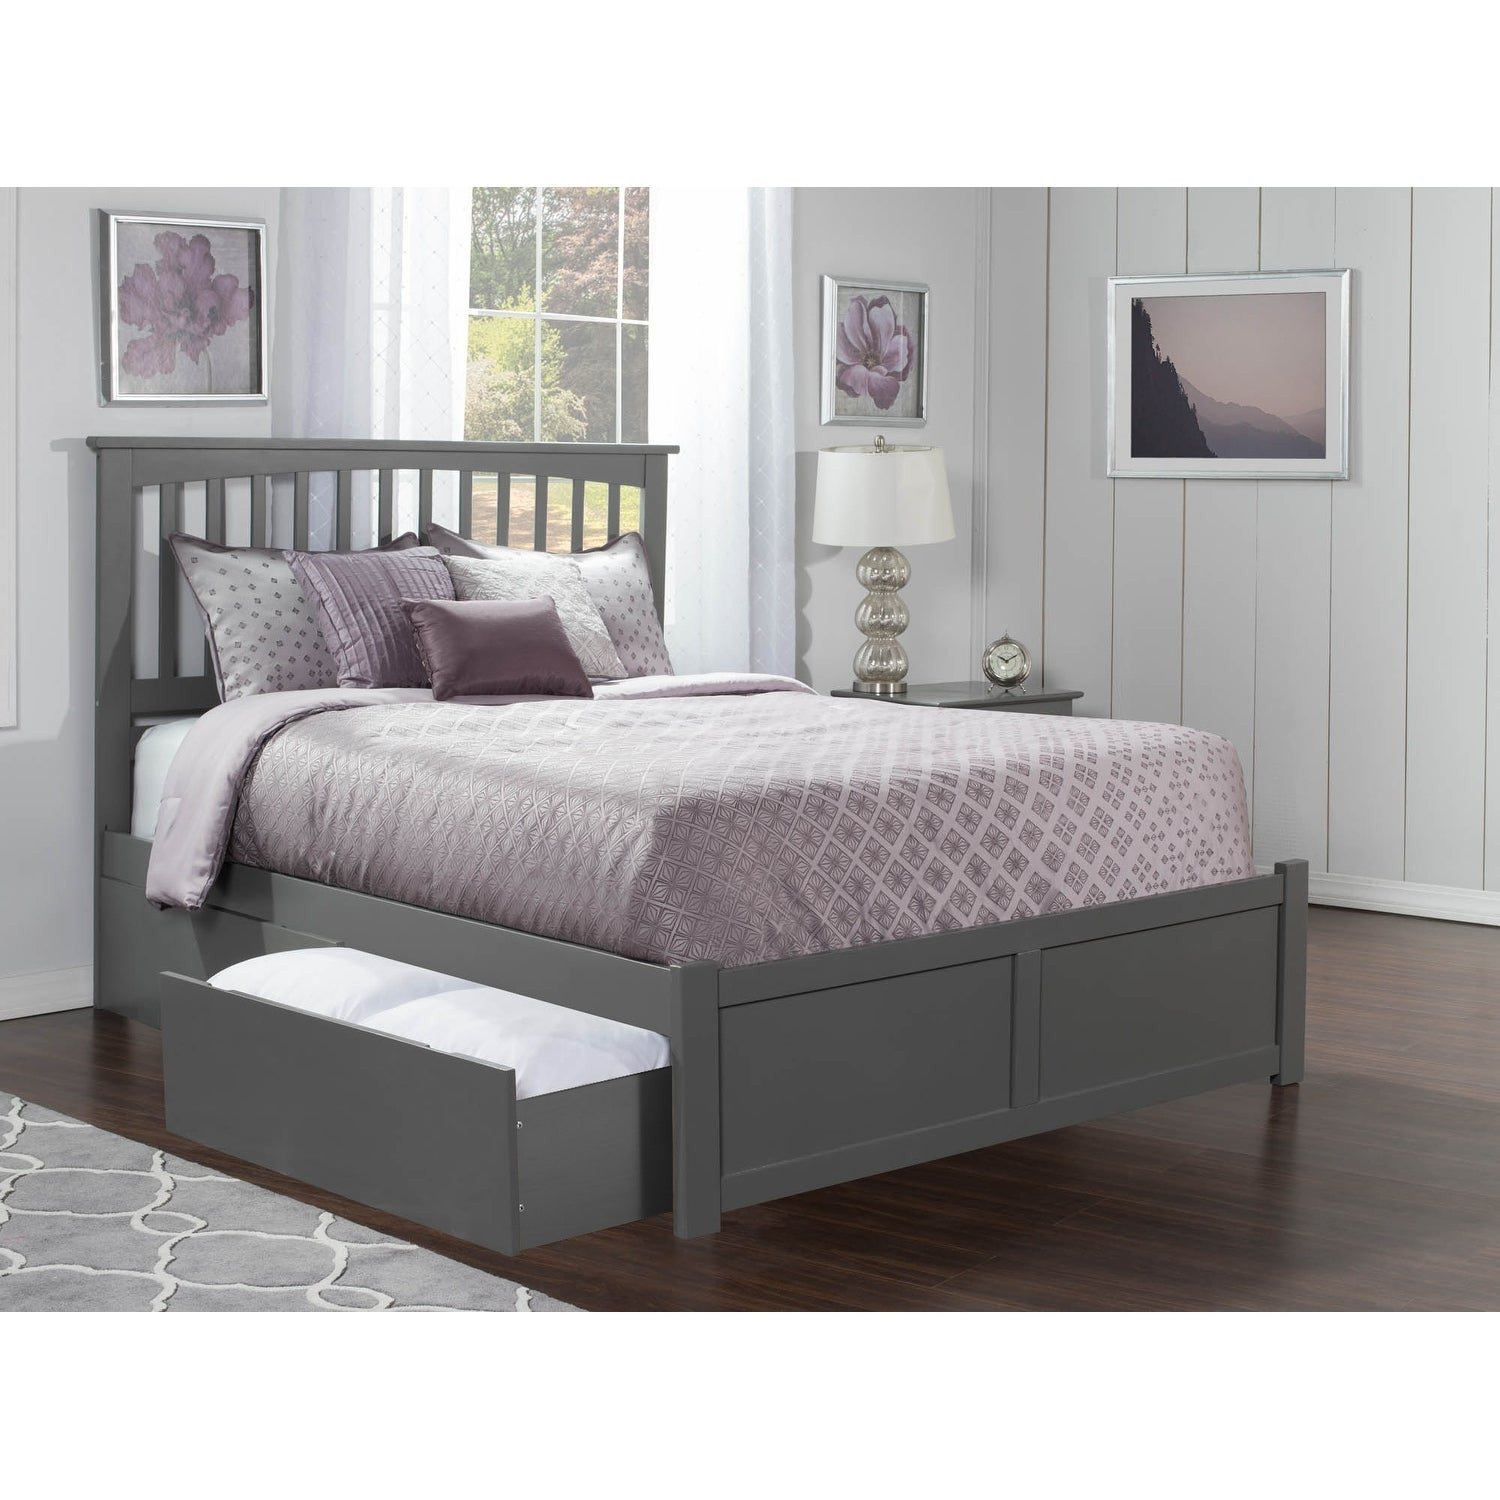 Grey Queen Bedroom Set Inspirational Mission Queen Platform Bed with Flat Panel Foot Board and 2 Urban Bed Drawers In atlantic Grey